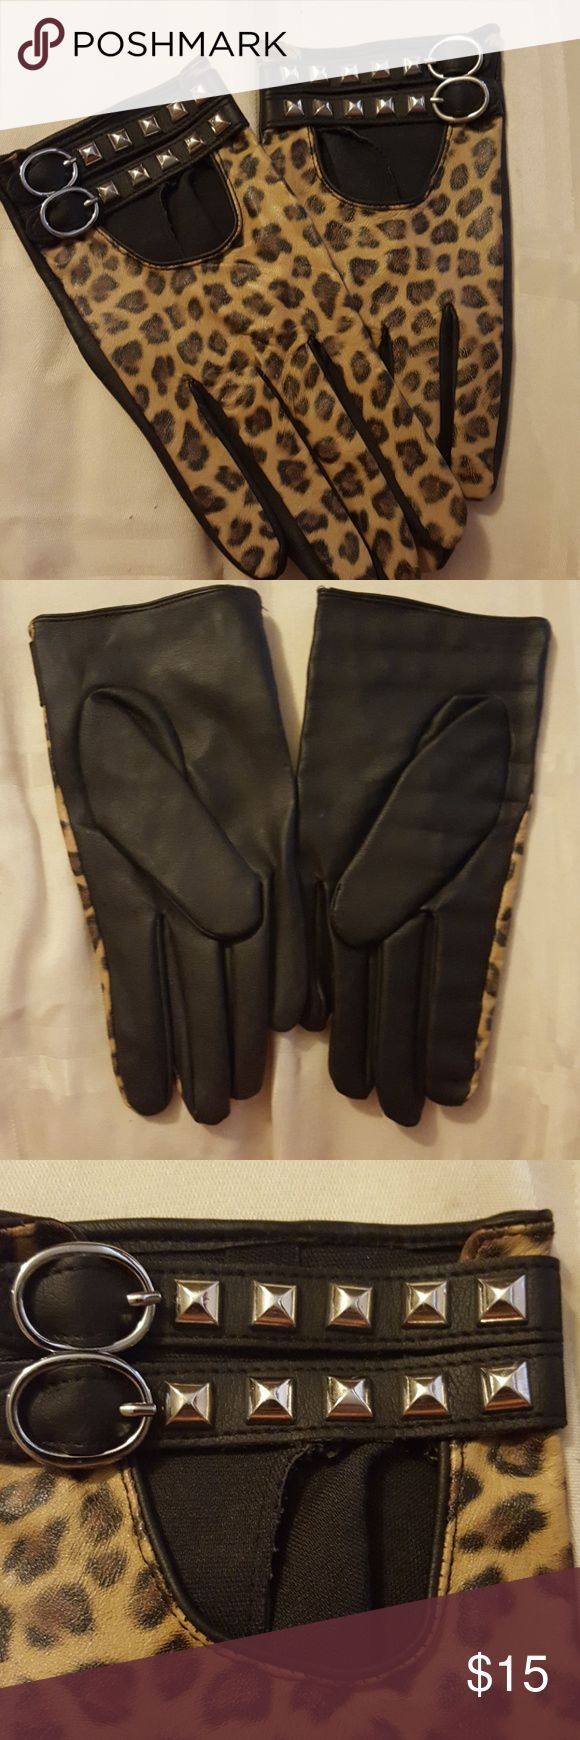 Black & Animal Print Gloves New, never worn. Small. Looks and feels like leather, but synthetic Accessories Gloves & Mittens